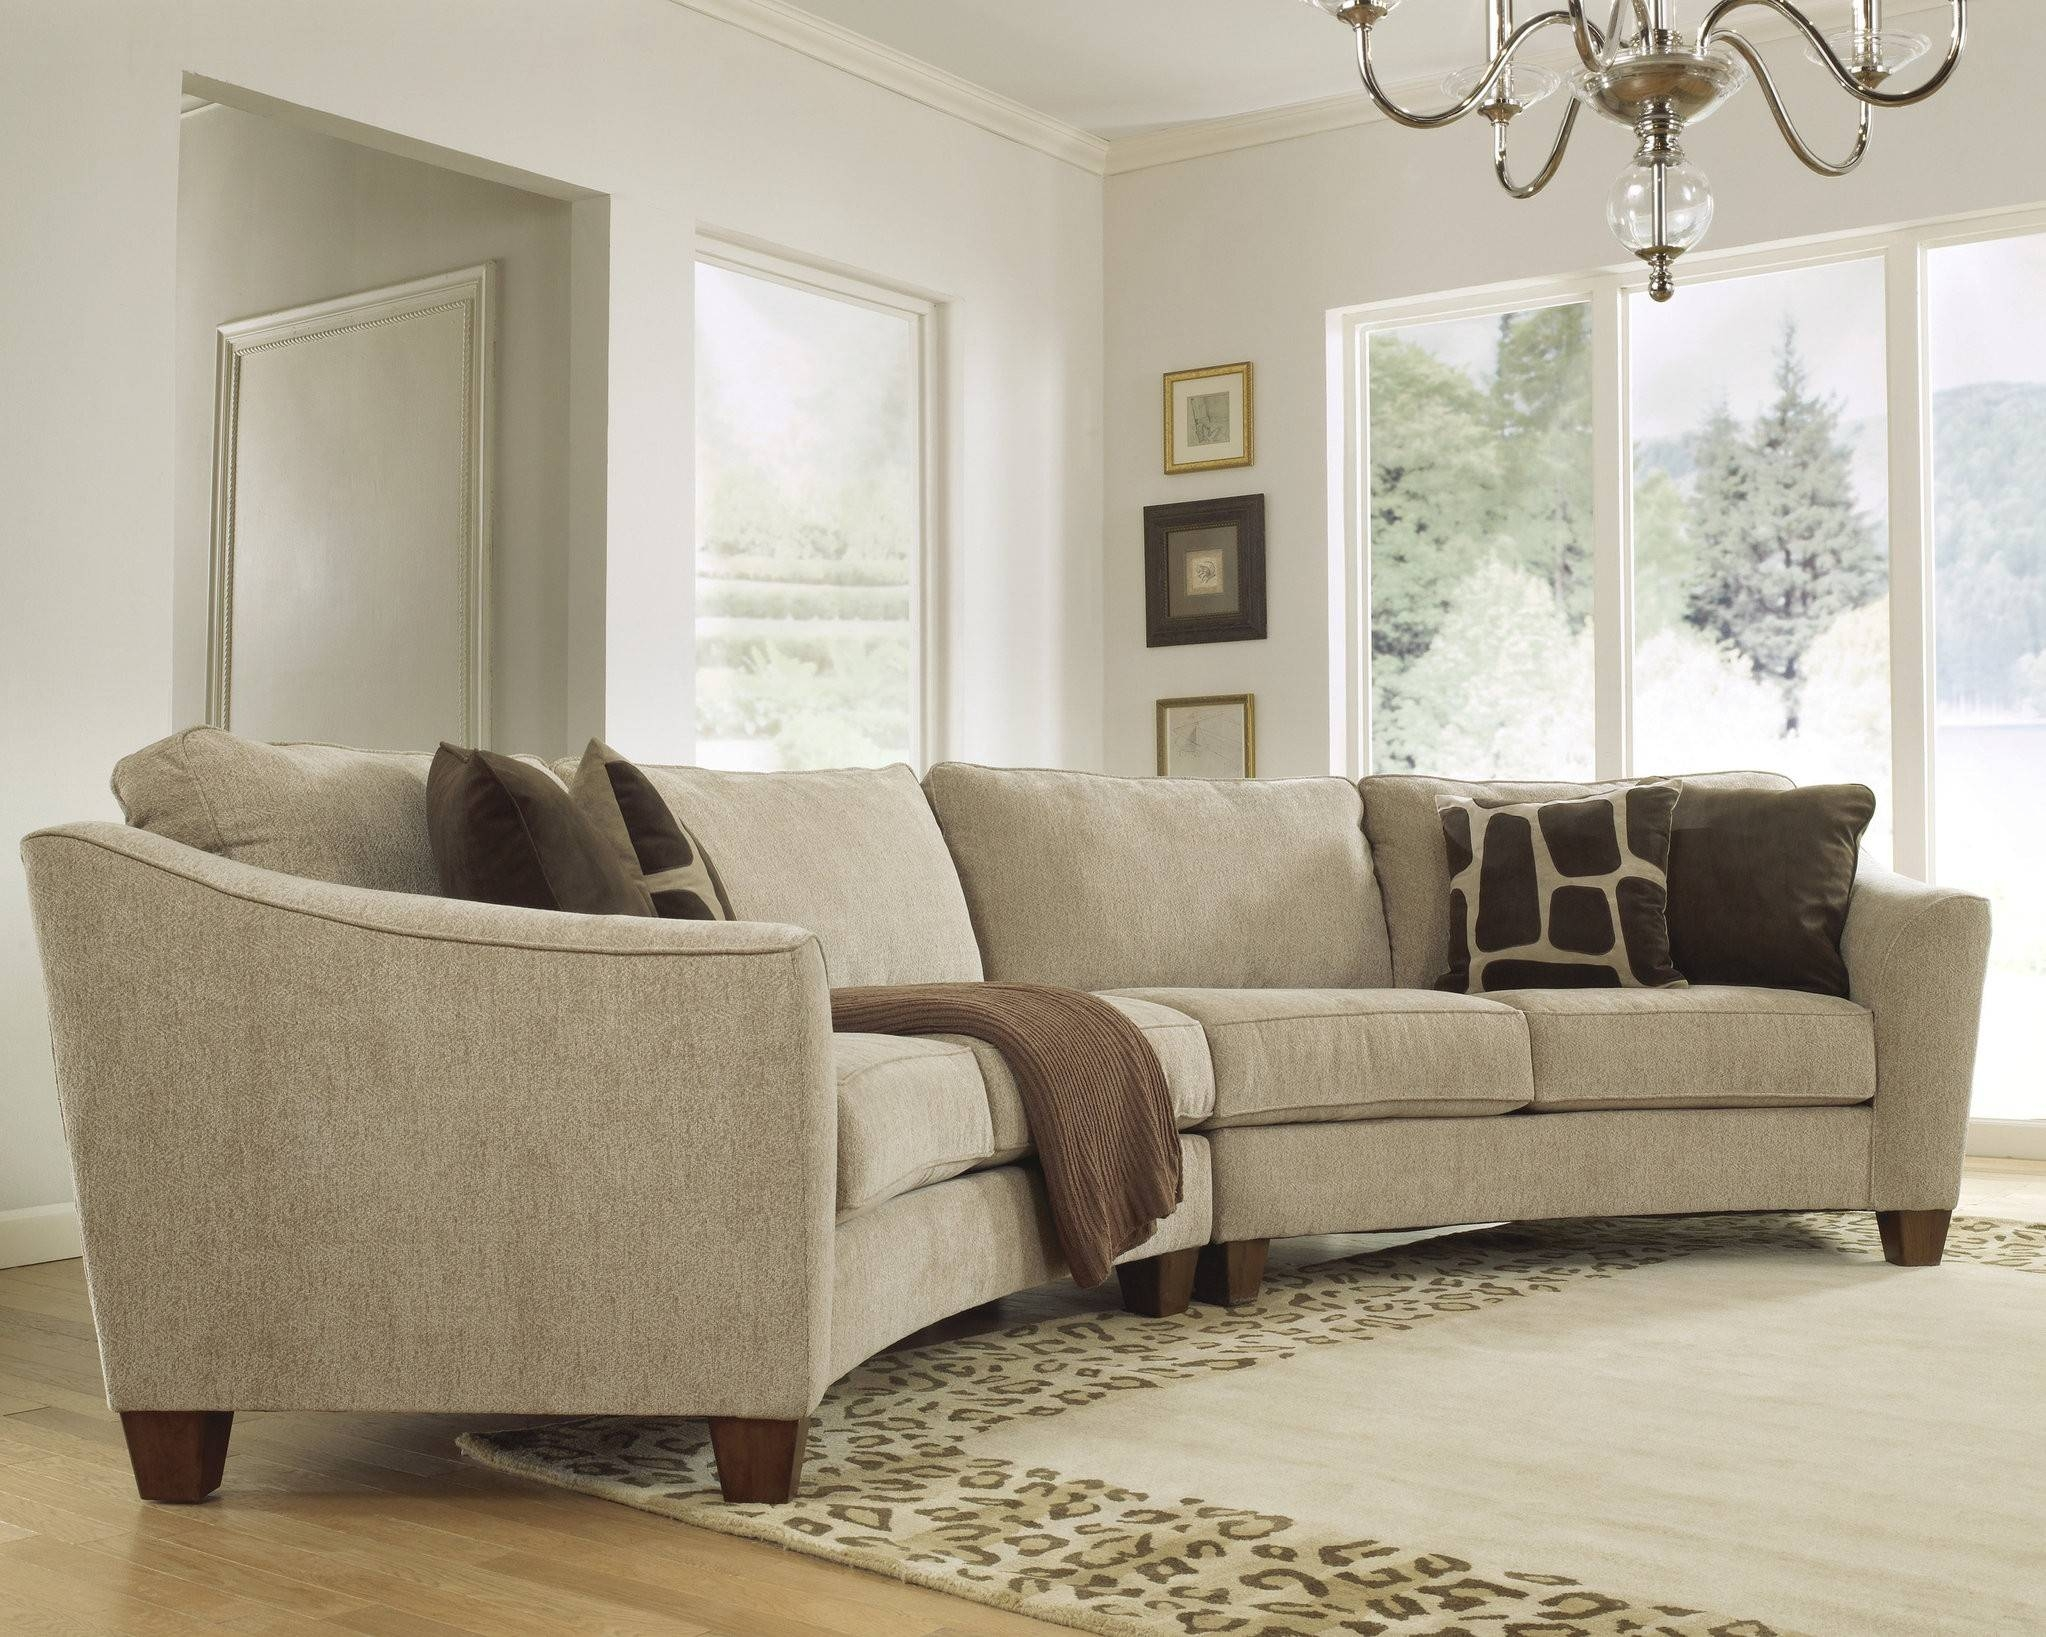 Furniture. Marvelous Oval Sectional Sofas Give A Remarkable Look for Oval Sofas (Image 6 of 30)